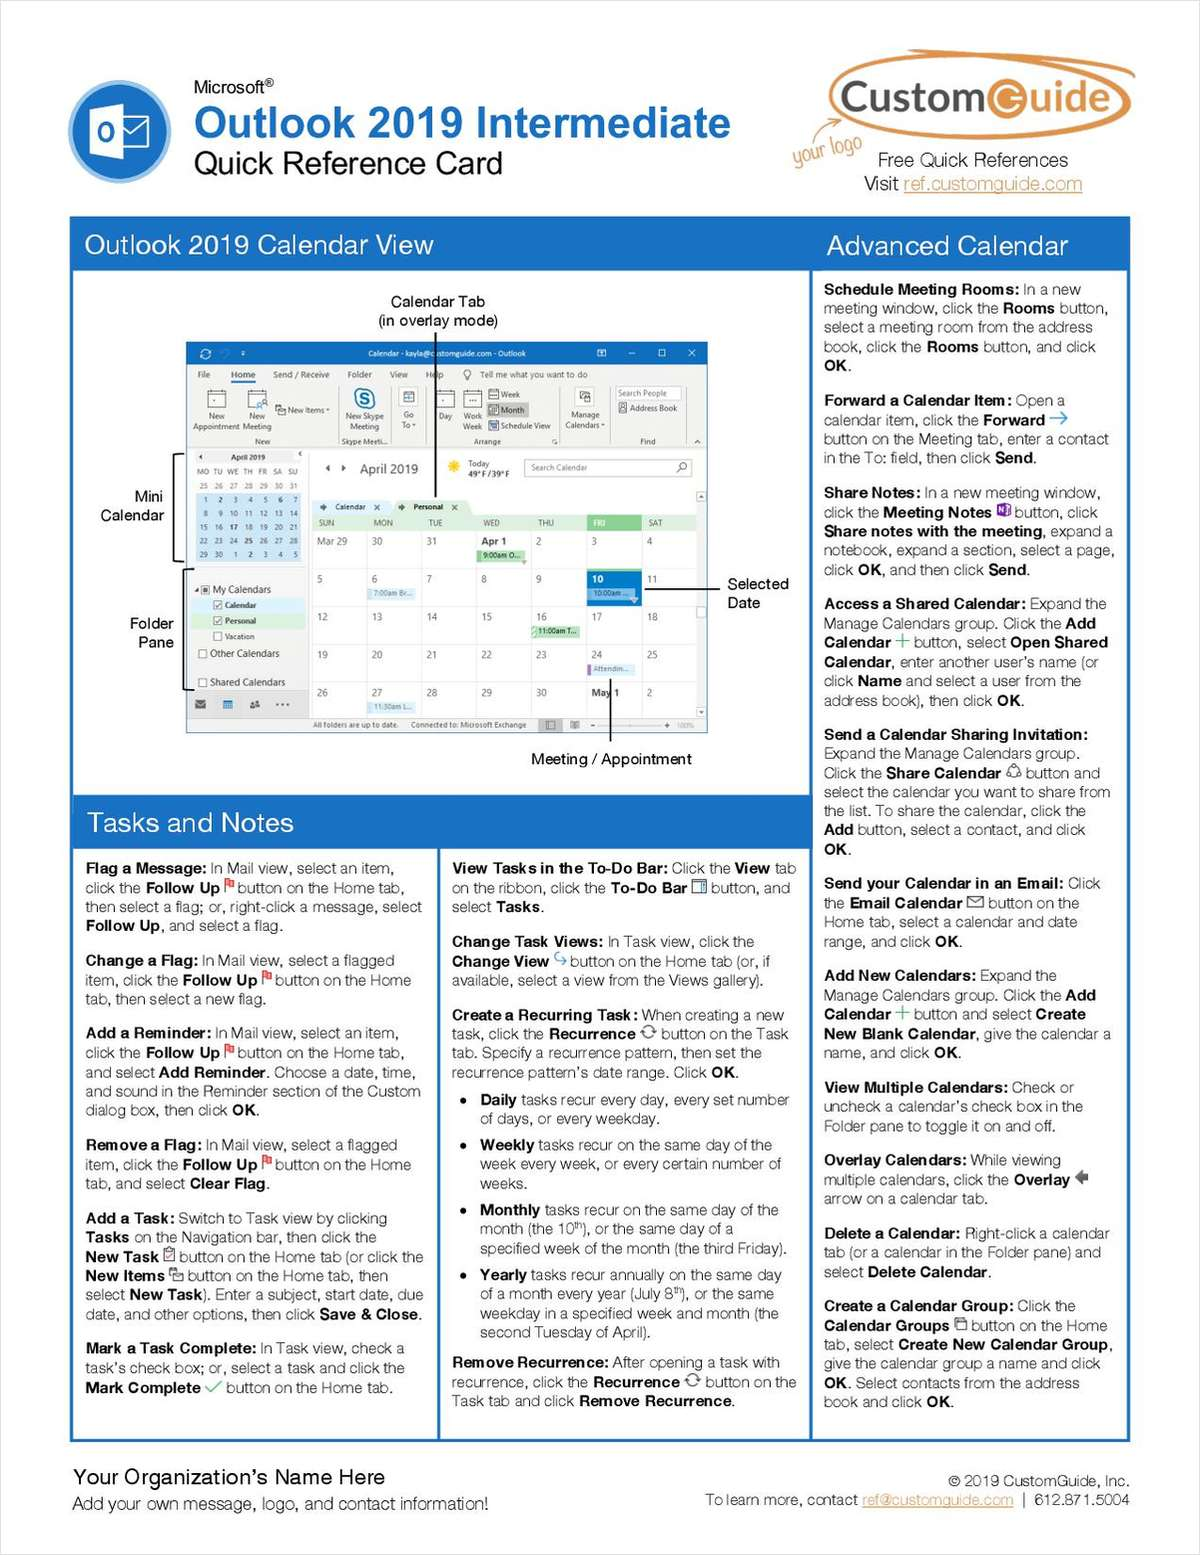 Microsoft Outlook 2019 Intermediate - Quick Reference Card